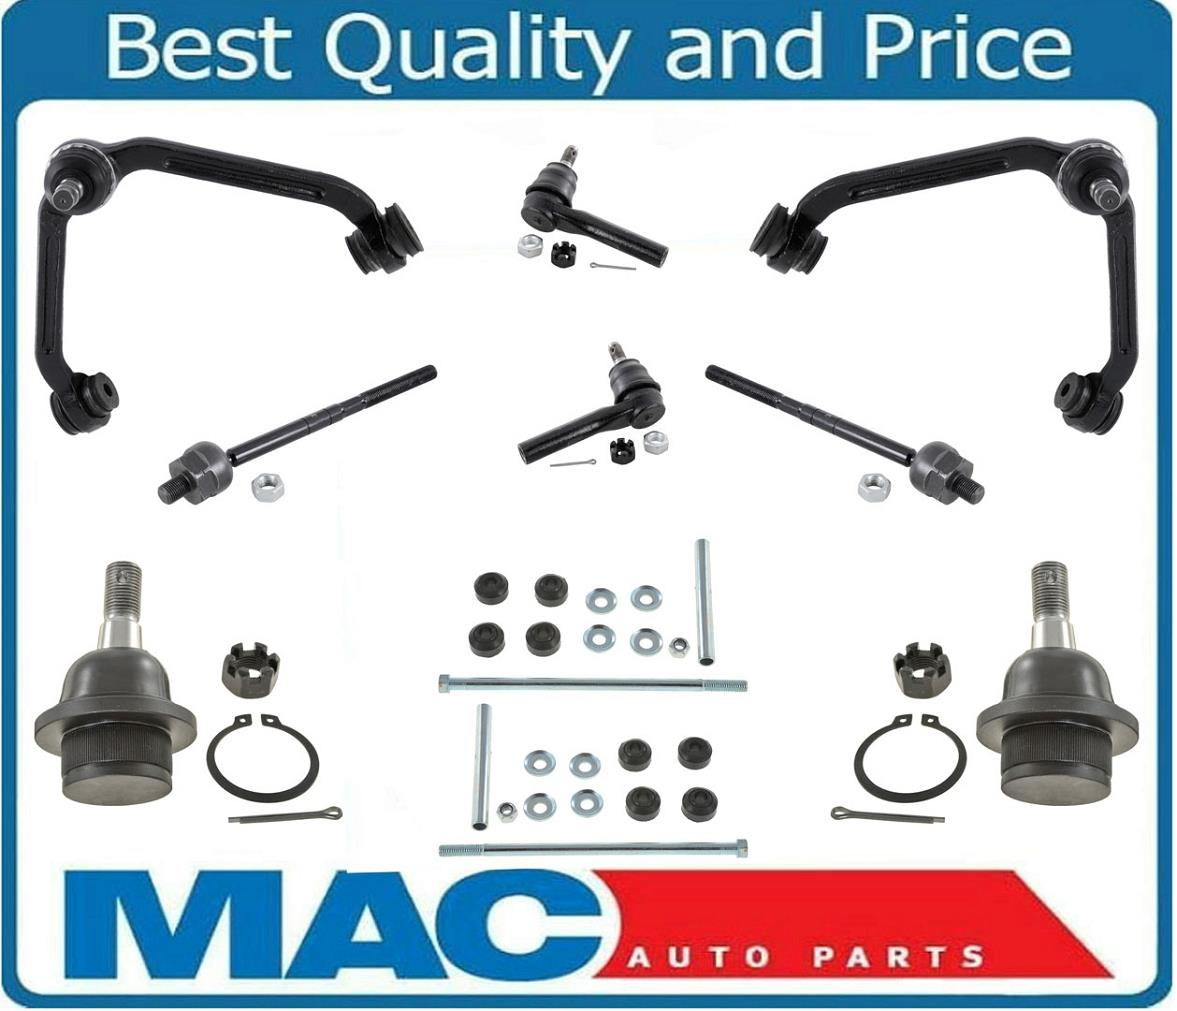 hight resolution of 10 pc kit for 1998 2001 ford explorer upper control arm ball joint tie rod